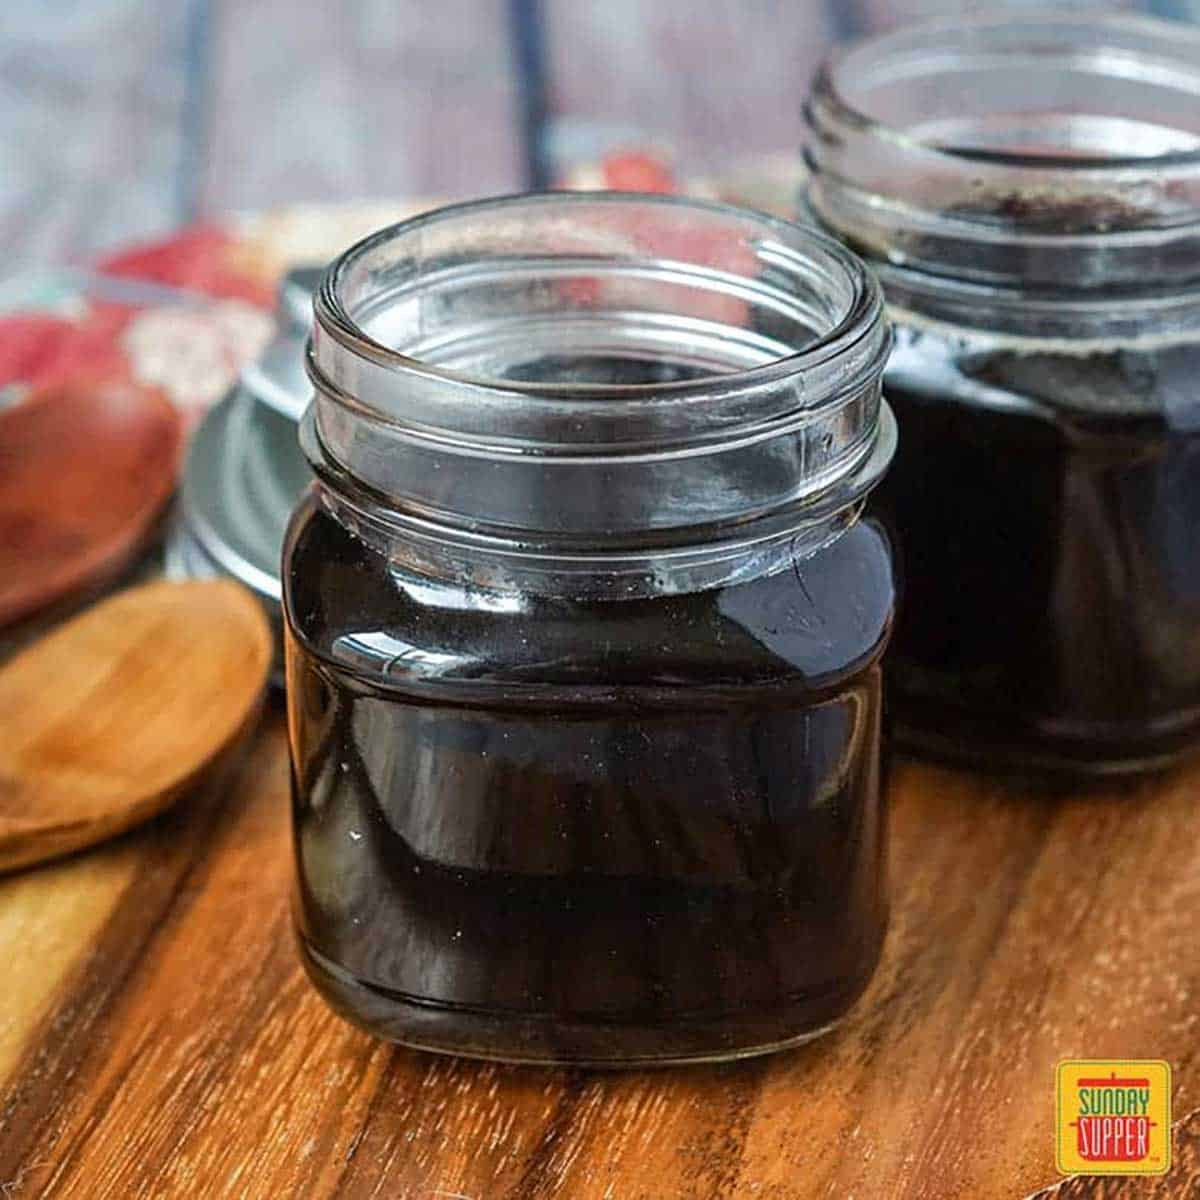 Homemade teriyaki sauce in two glass jars on a wooden surface